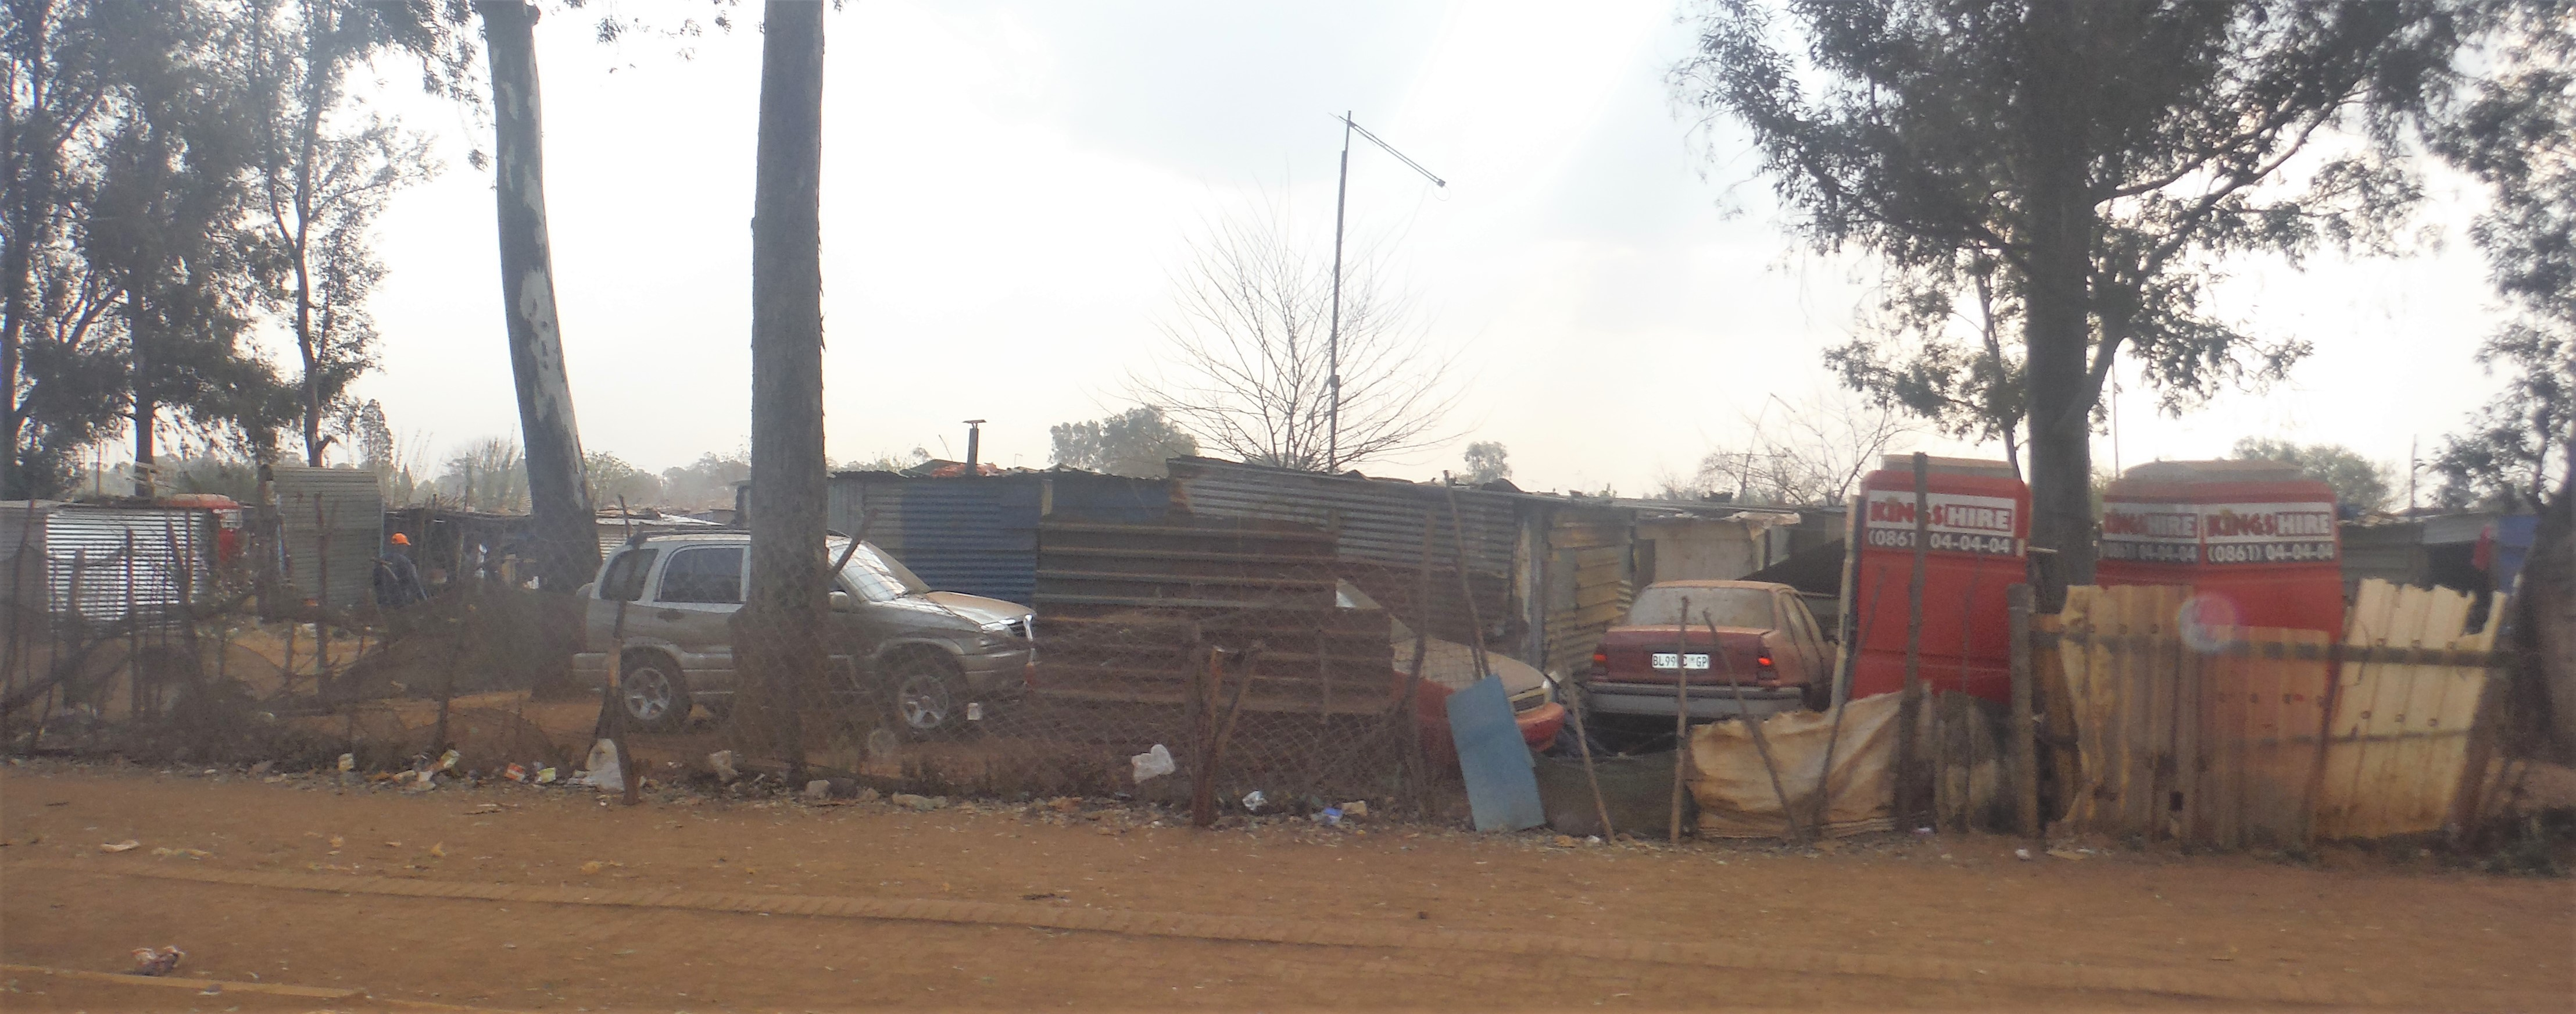 Another part of the Shanty town